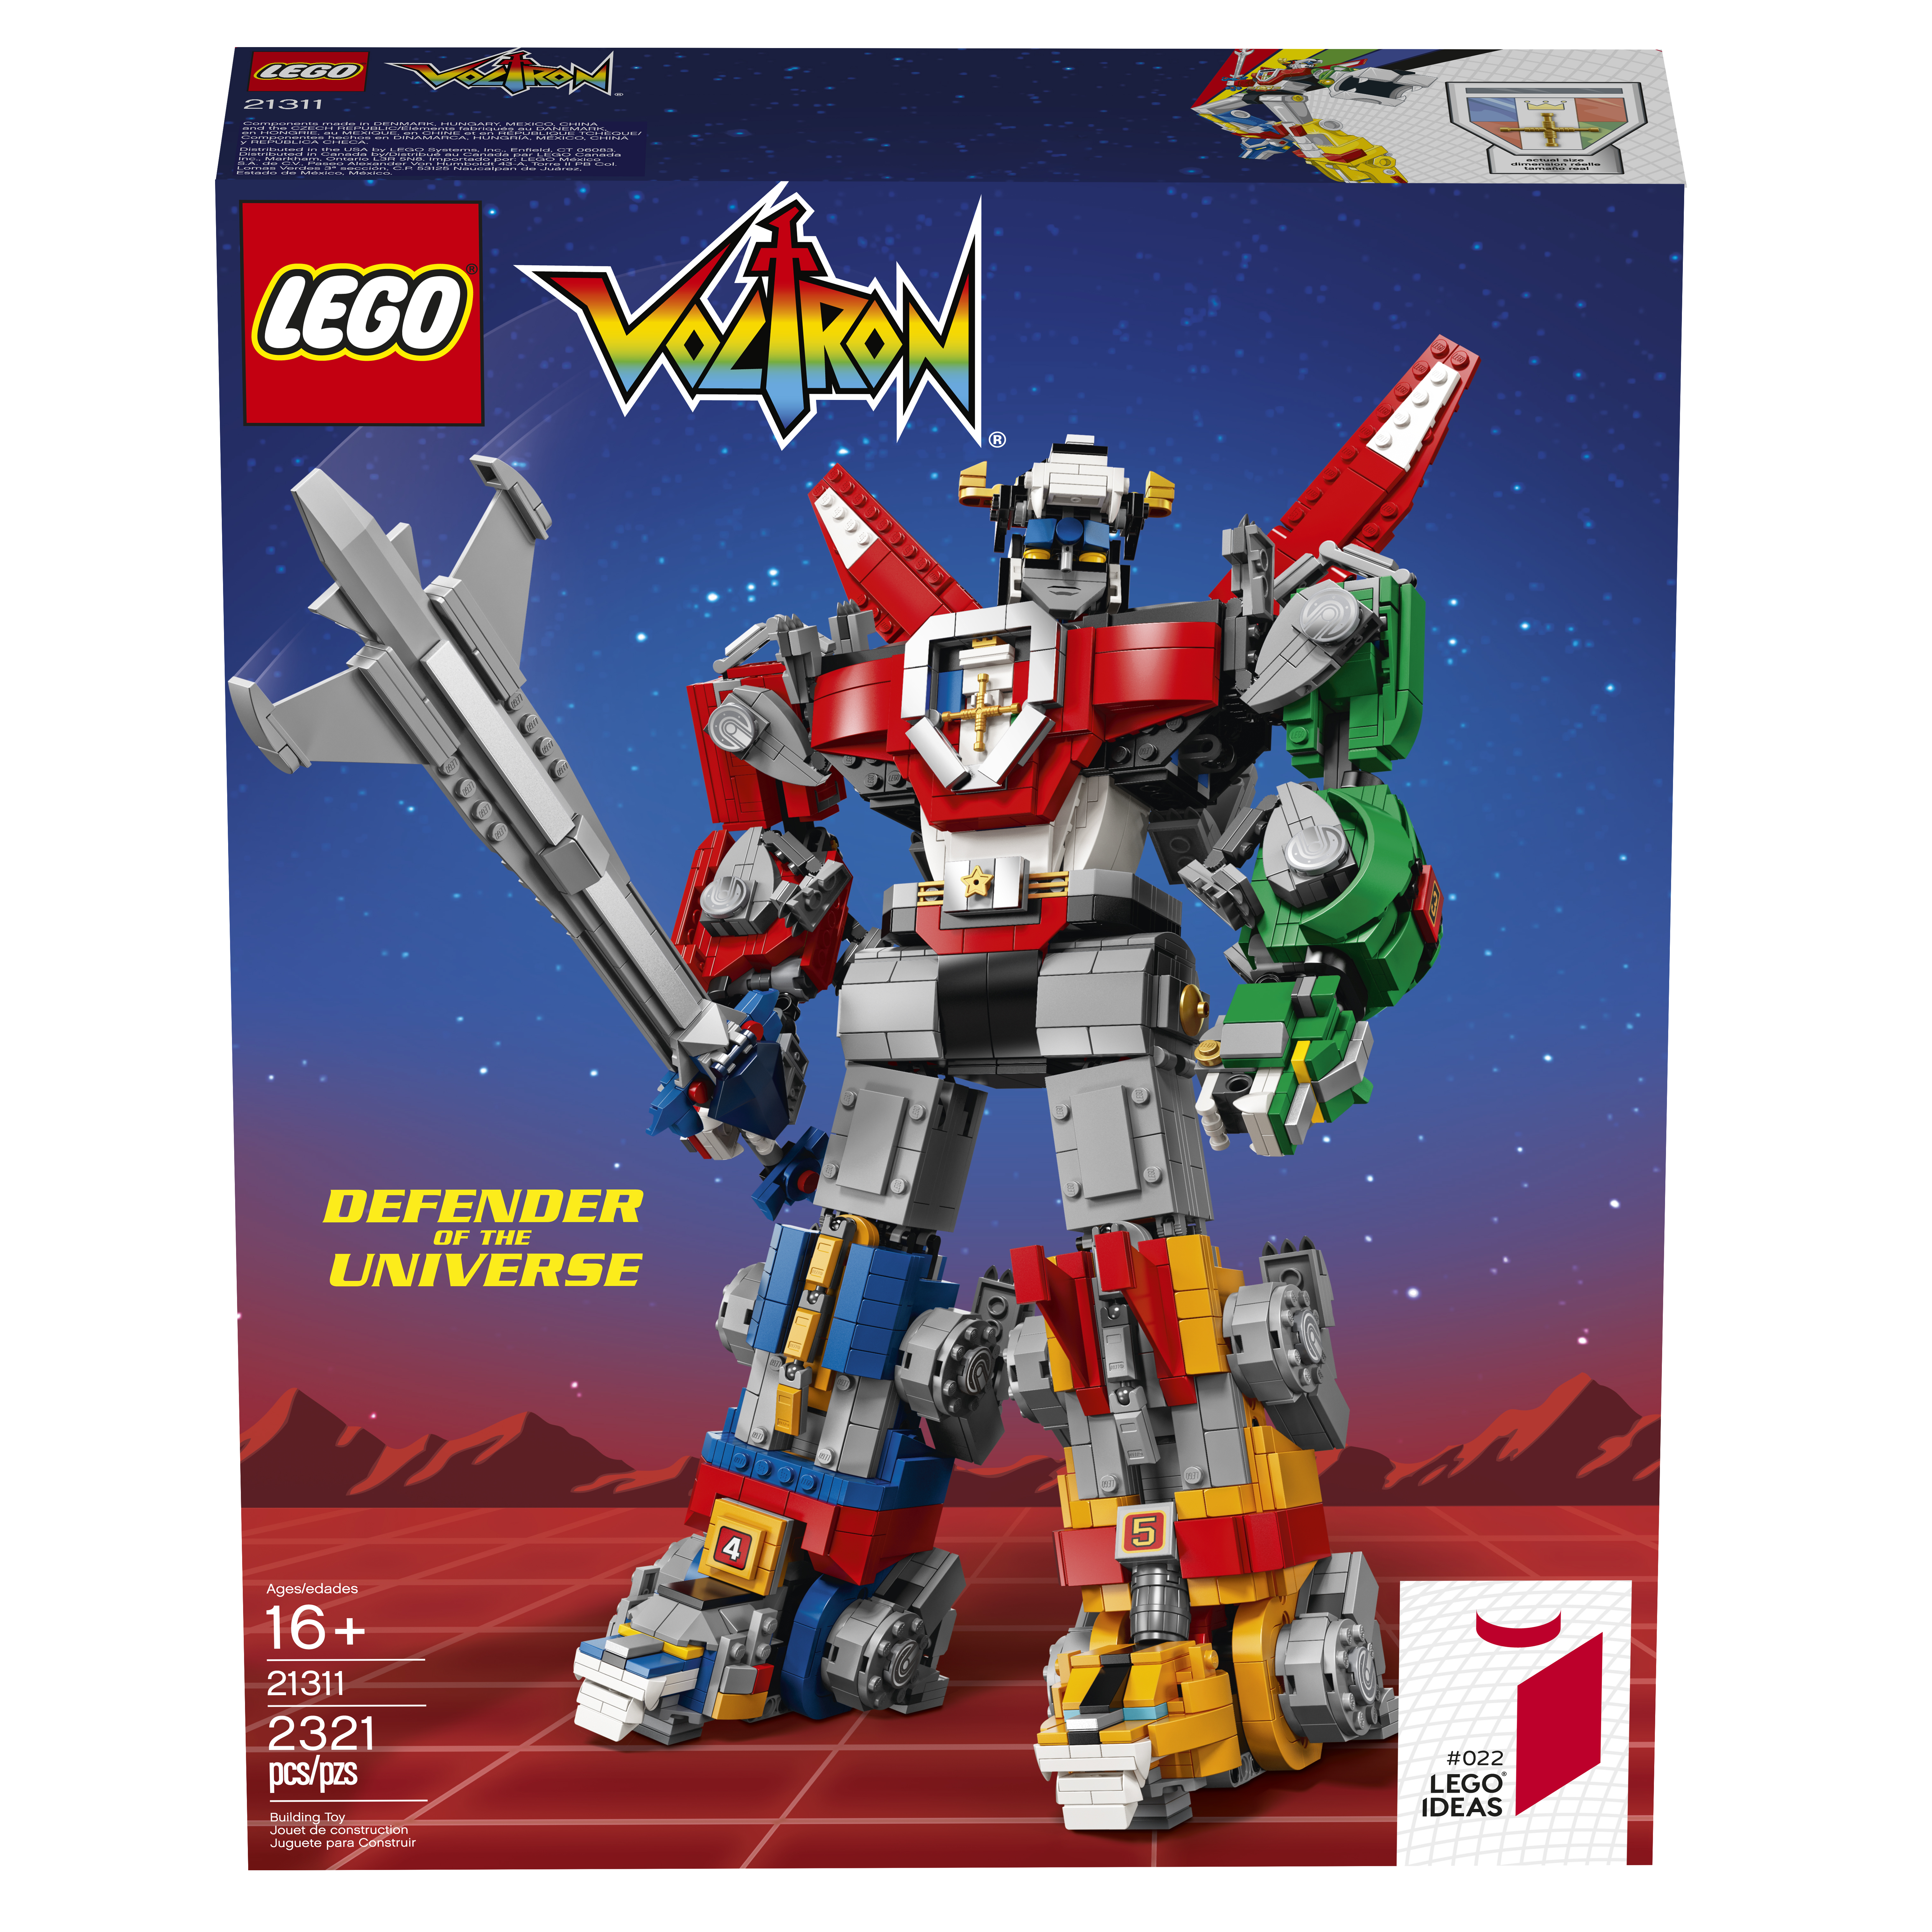 LEGO VOLTRON IS HAPPENING!